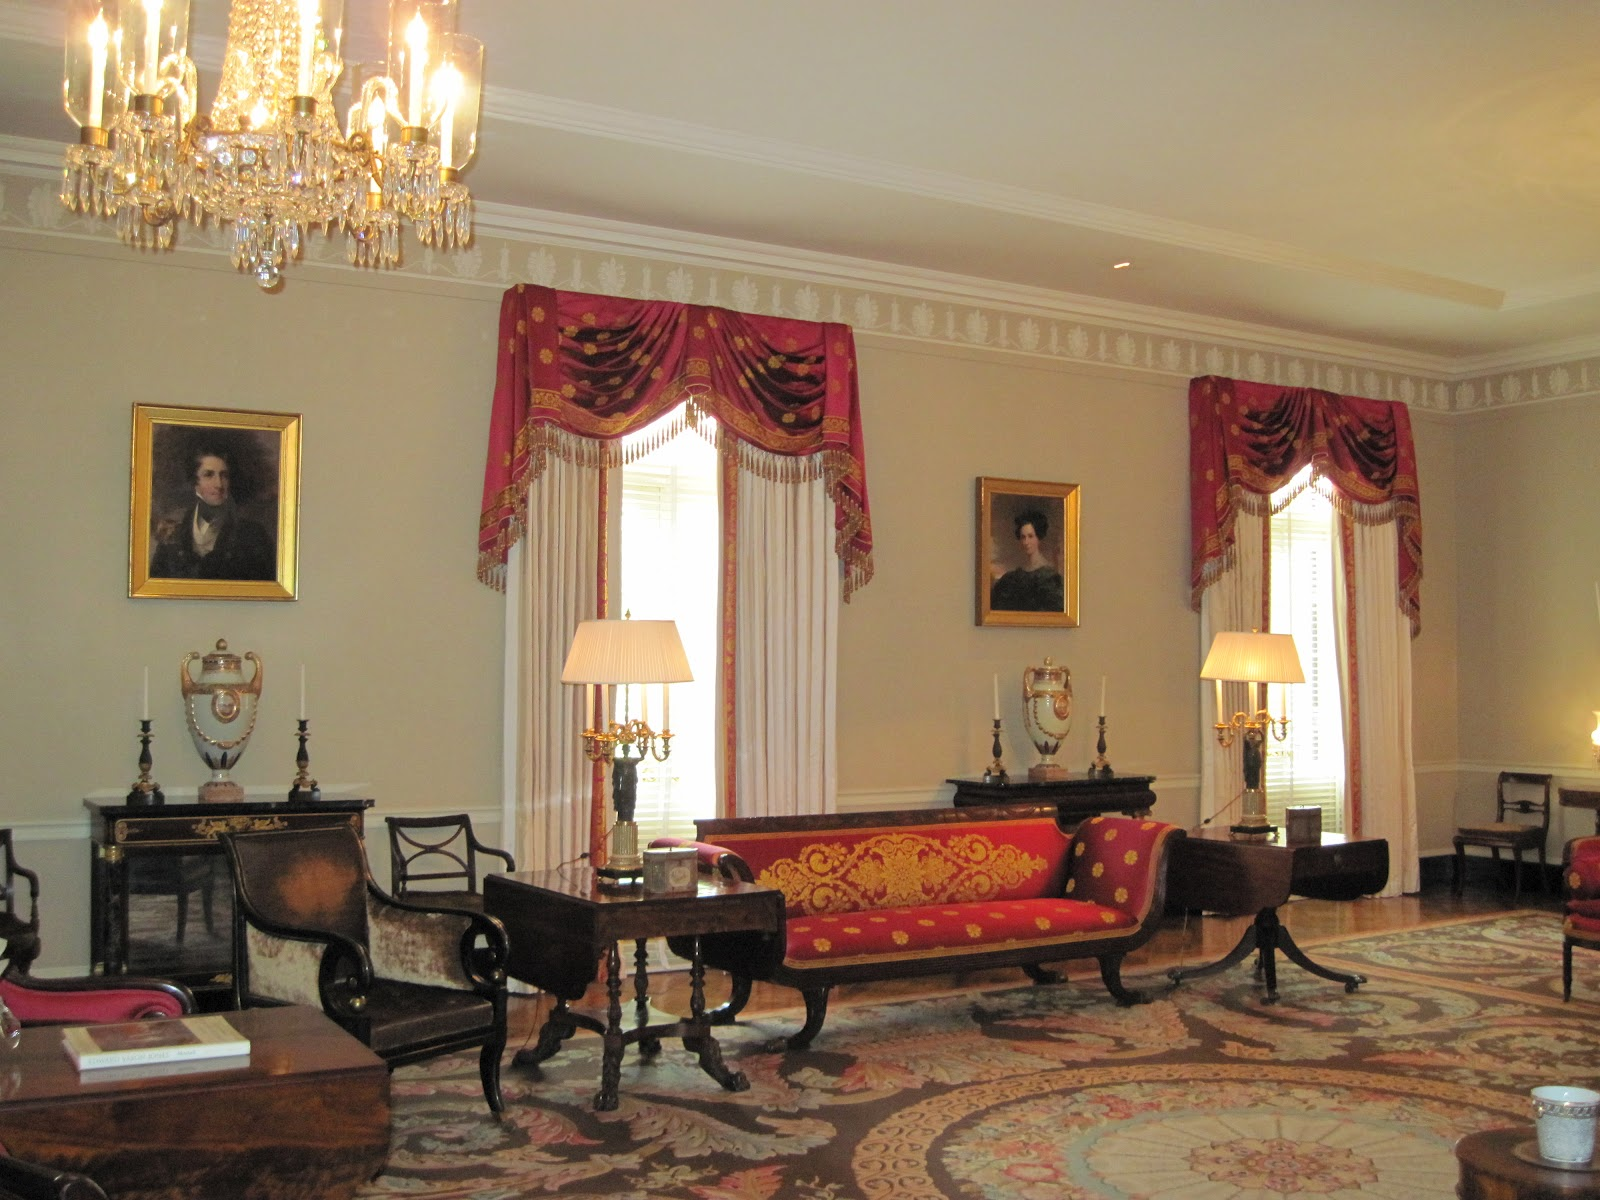 This is the most magnificent room. The draperies, rug, furnitureso title=